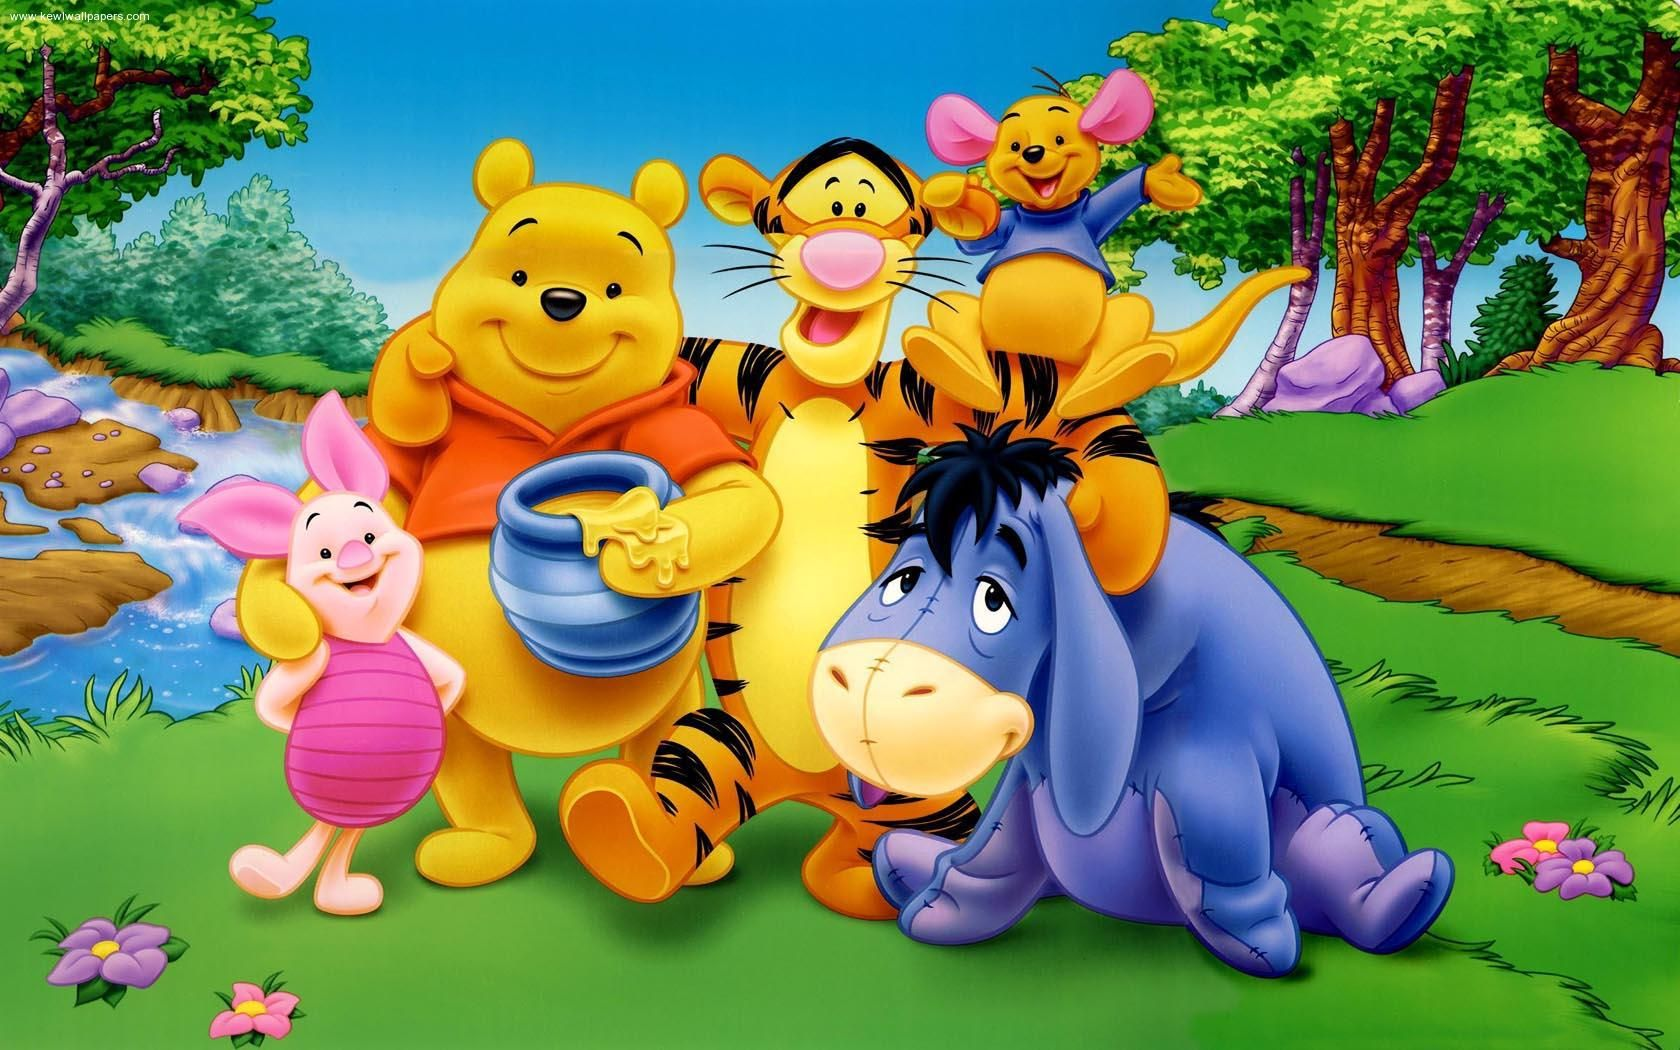 Pooh Bear Wallpapers 1680 1050 Pooh Bear Backgrounds 38 Wallpapers Adorable Wallpapers Winnie The Pooh Winnie The Pooh Friends Disney Winnie The Pooh